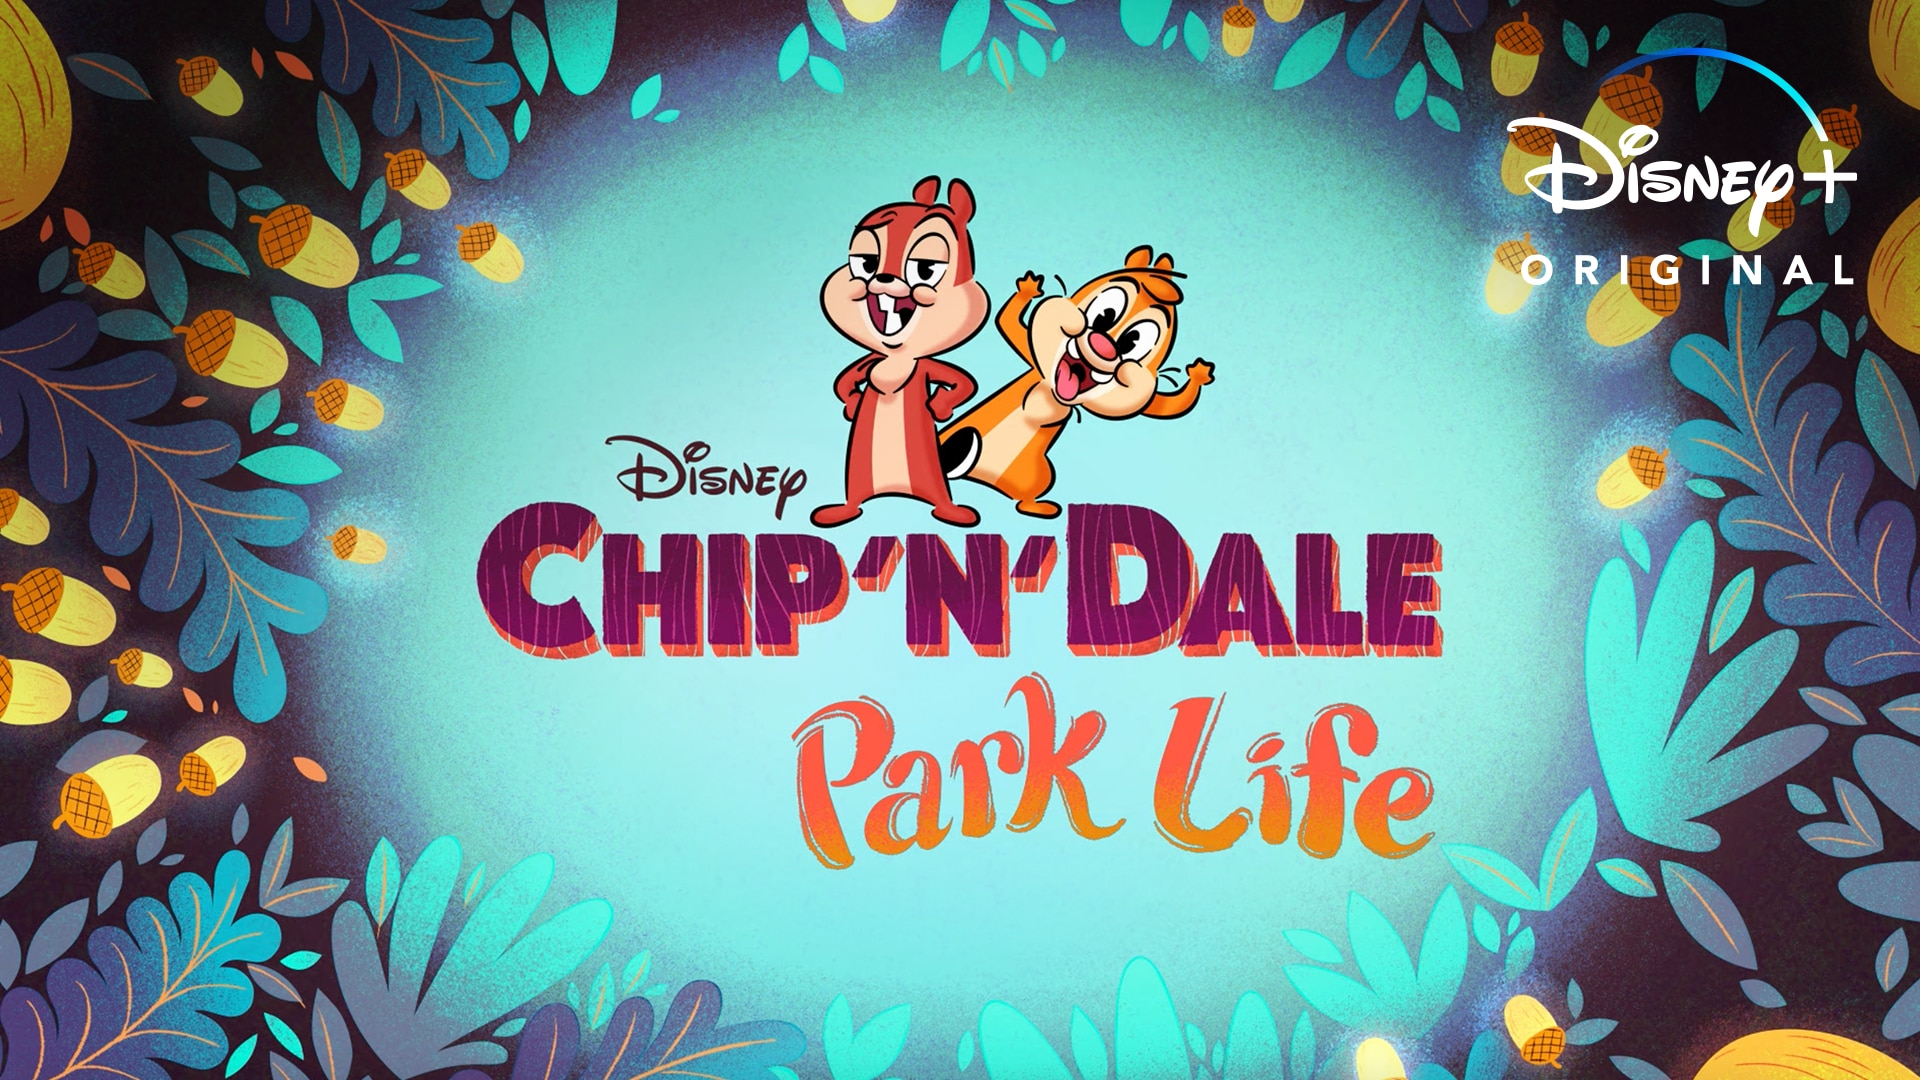 Opening Title Sequence | Chip 'n' Dale: Park Life | Disney+